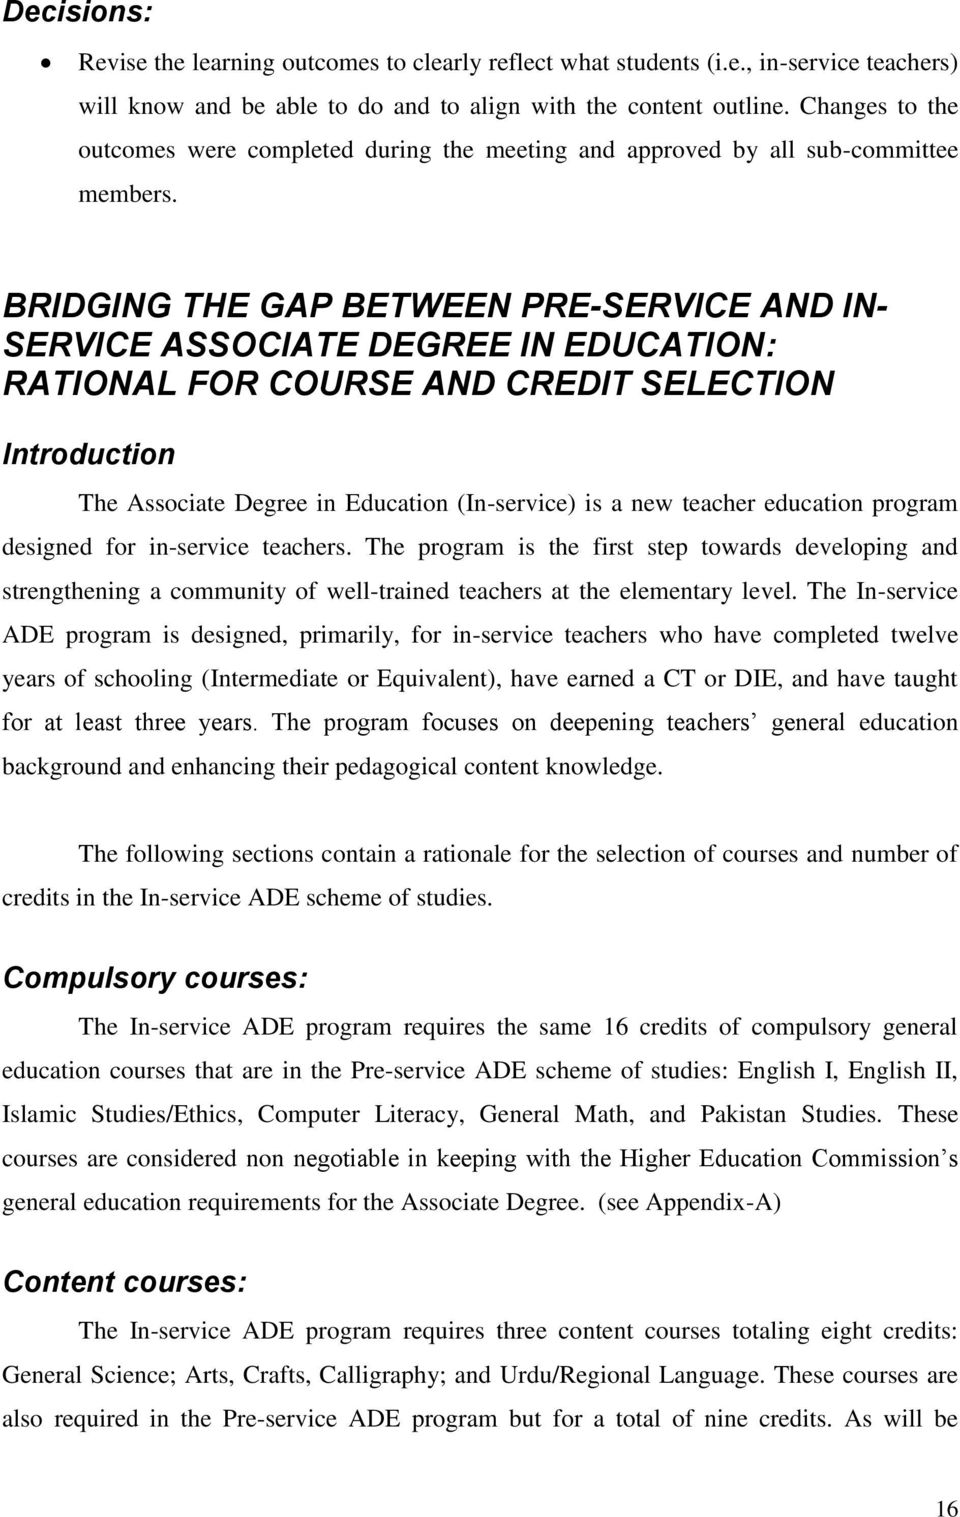 BRIDGING THE GAP BETWEEN PRE-SERVICE AND IN- SERVICE ASSOCIATE DEGREE IN EDUCATION: RATIONAL FOR COURSE AND CREDIT SELECTION Introduction The Associate Degree in Education (In-service) is a new